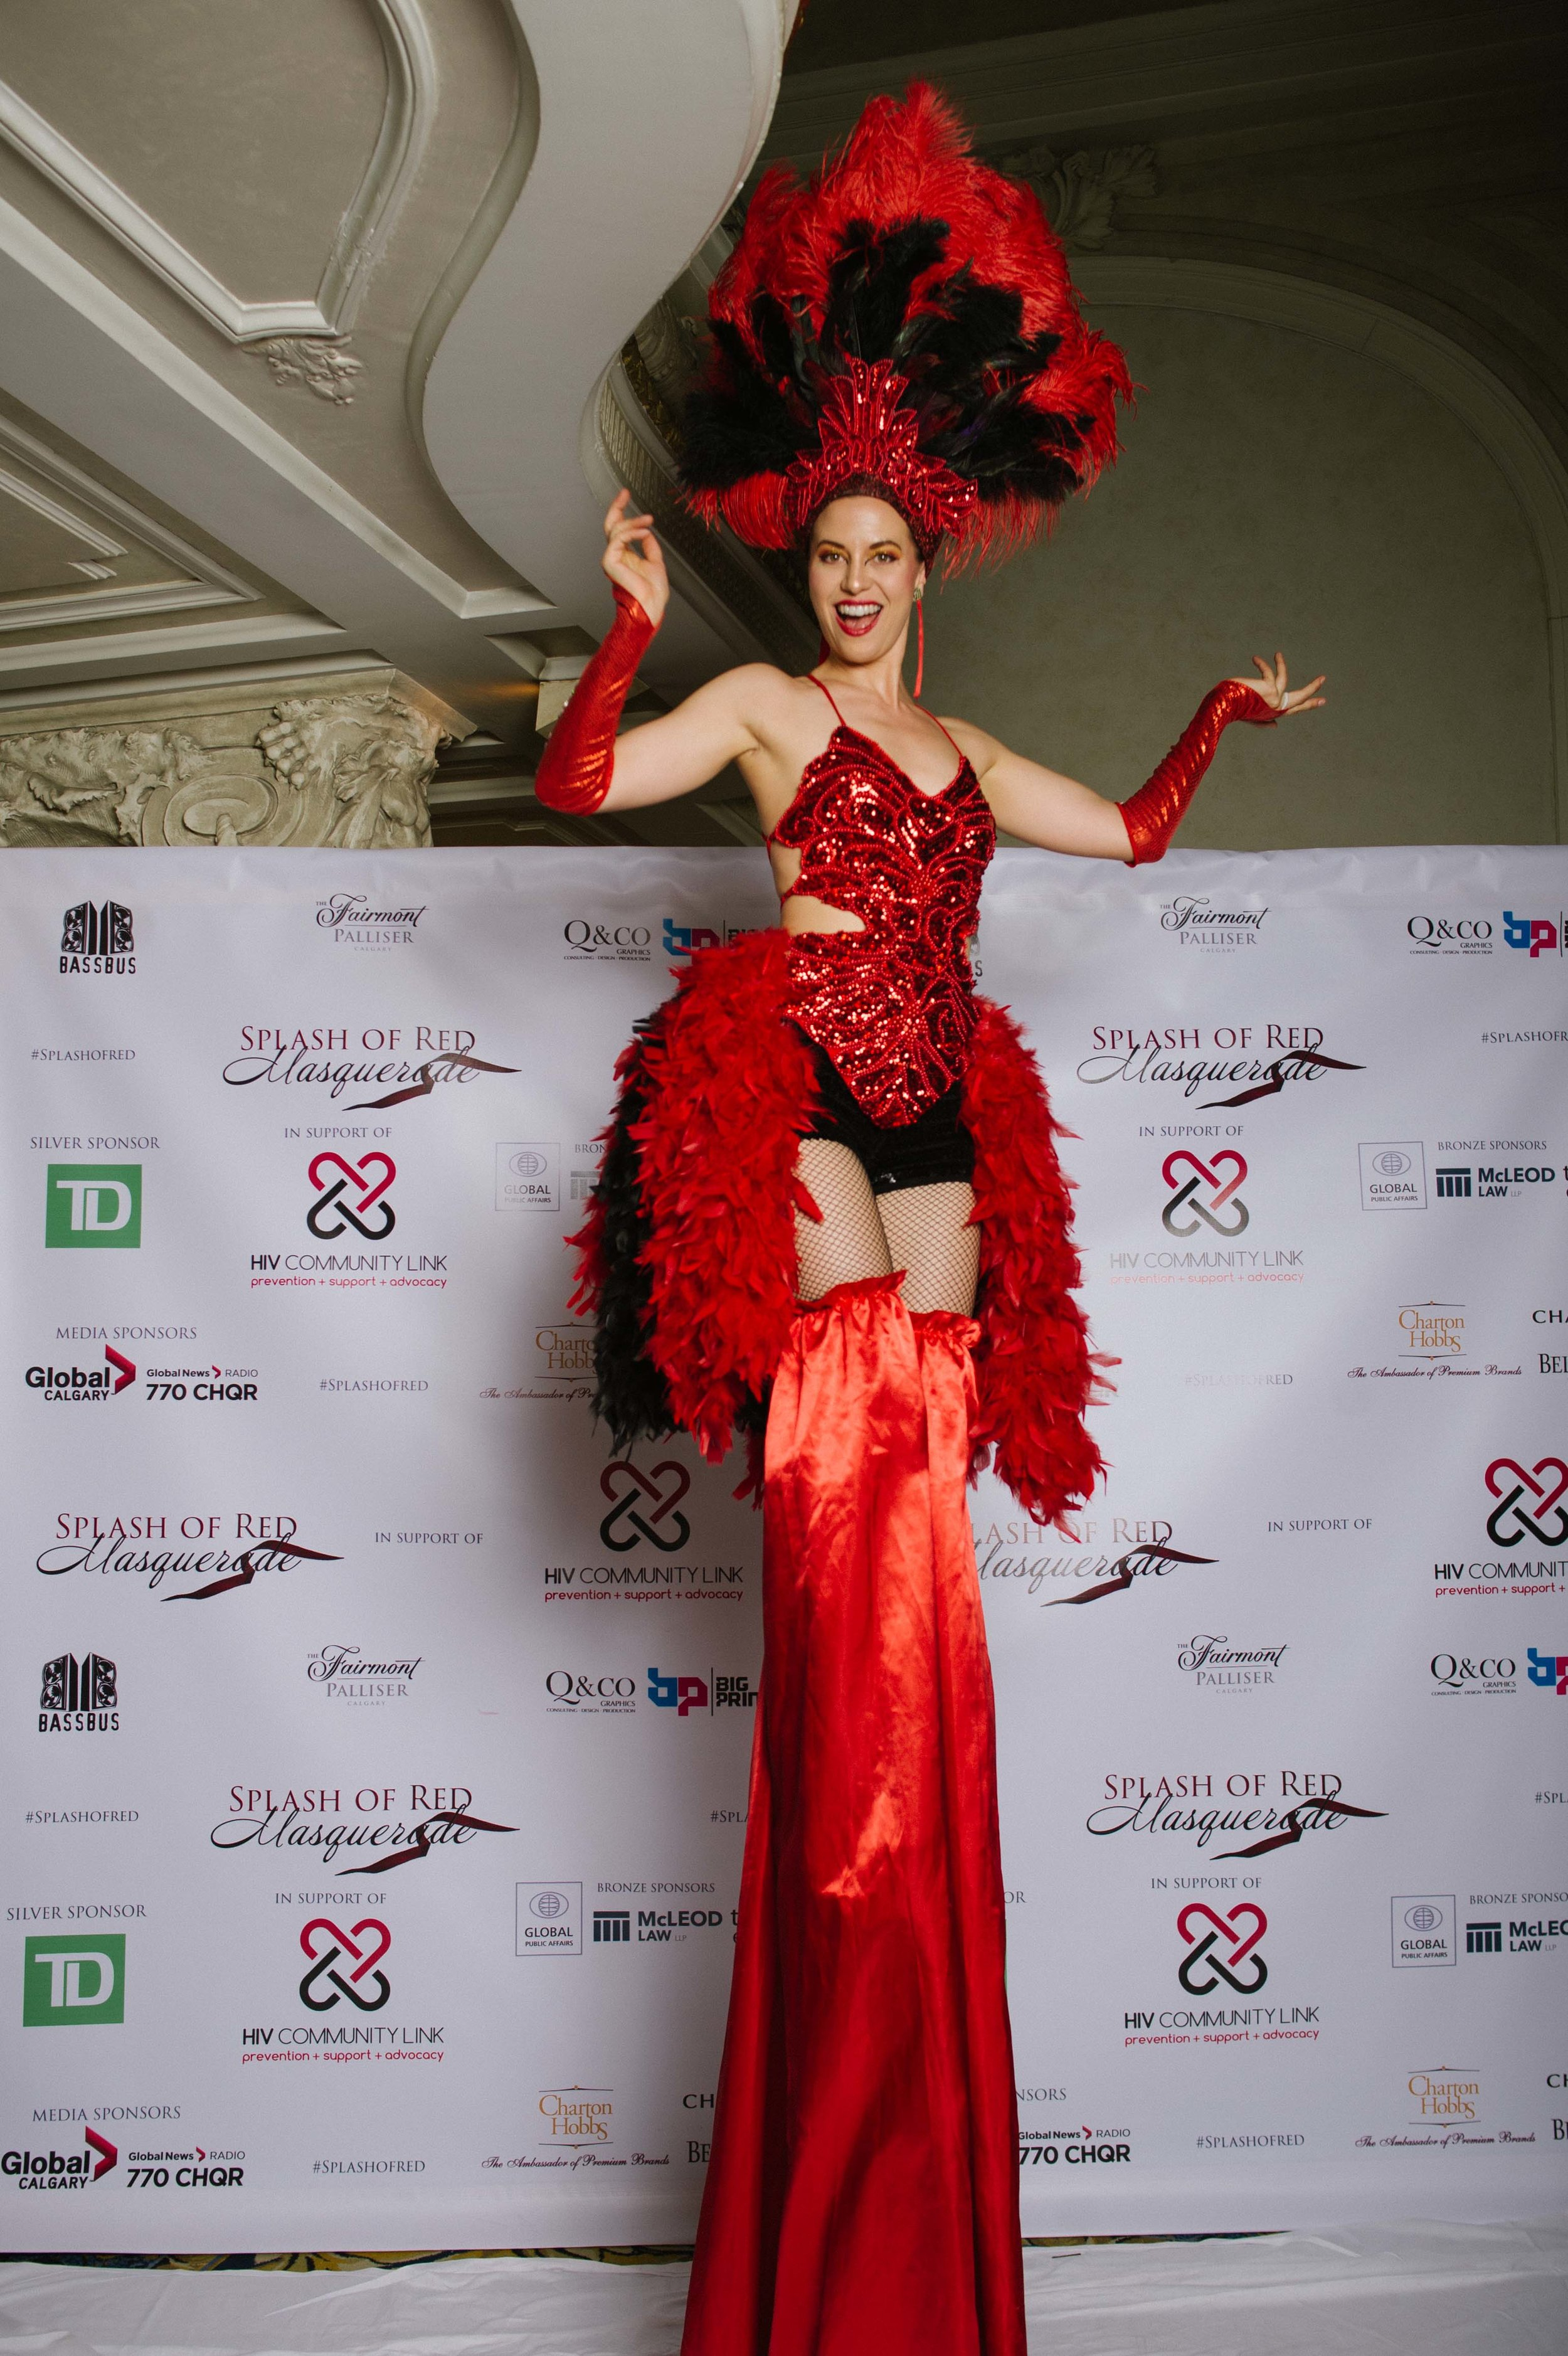 Christy-D-Swanberg-Photography-Calgary-Commercial-Corporate-Events-Splash-of-Red-Community-HIV-Link-13.jpg